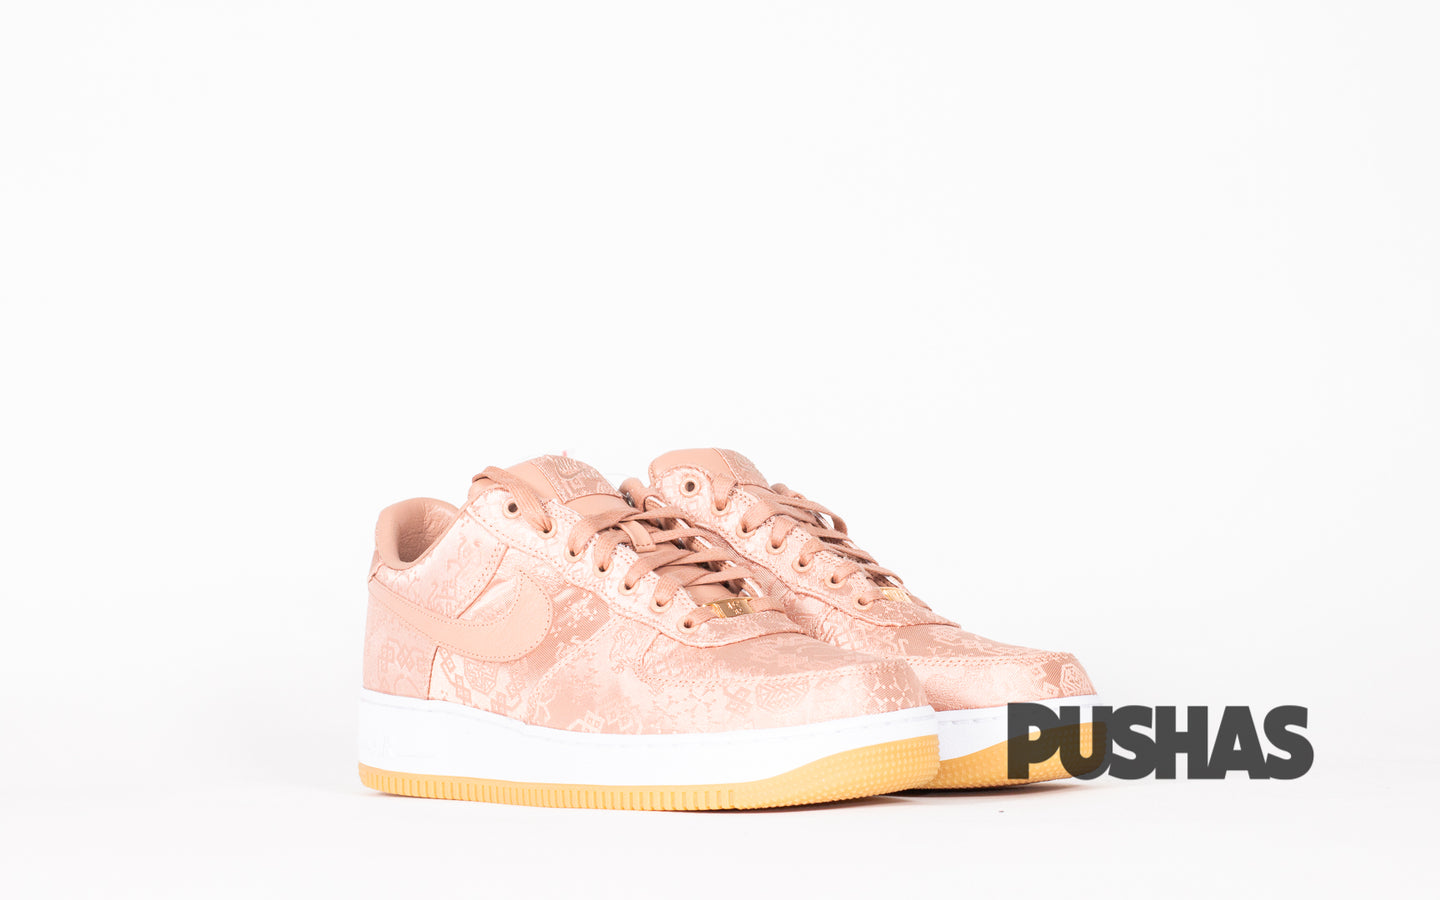 pushas-nike-Air-Force-1-Low-Clot-Rose-Gold-Silk-Regular-Box